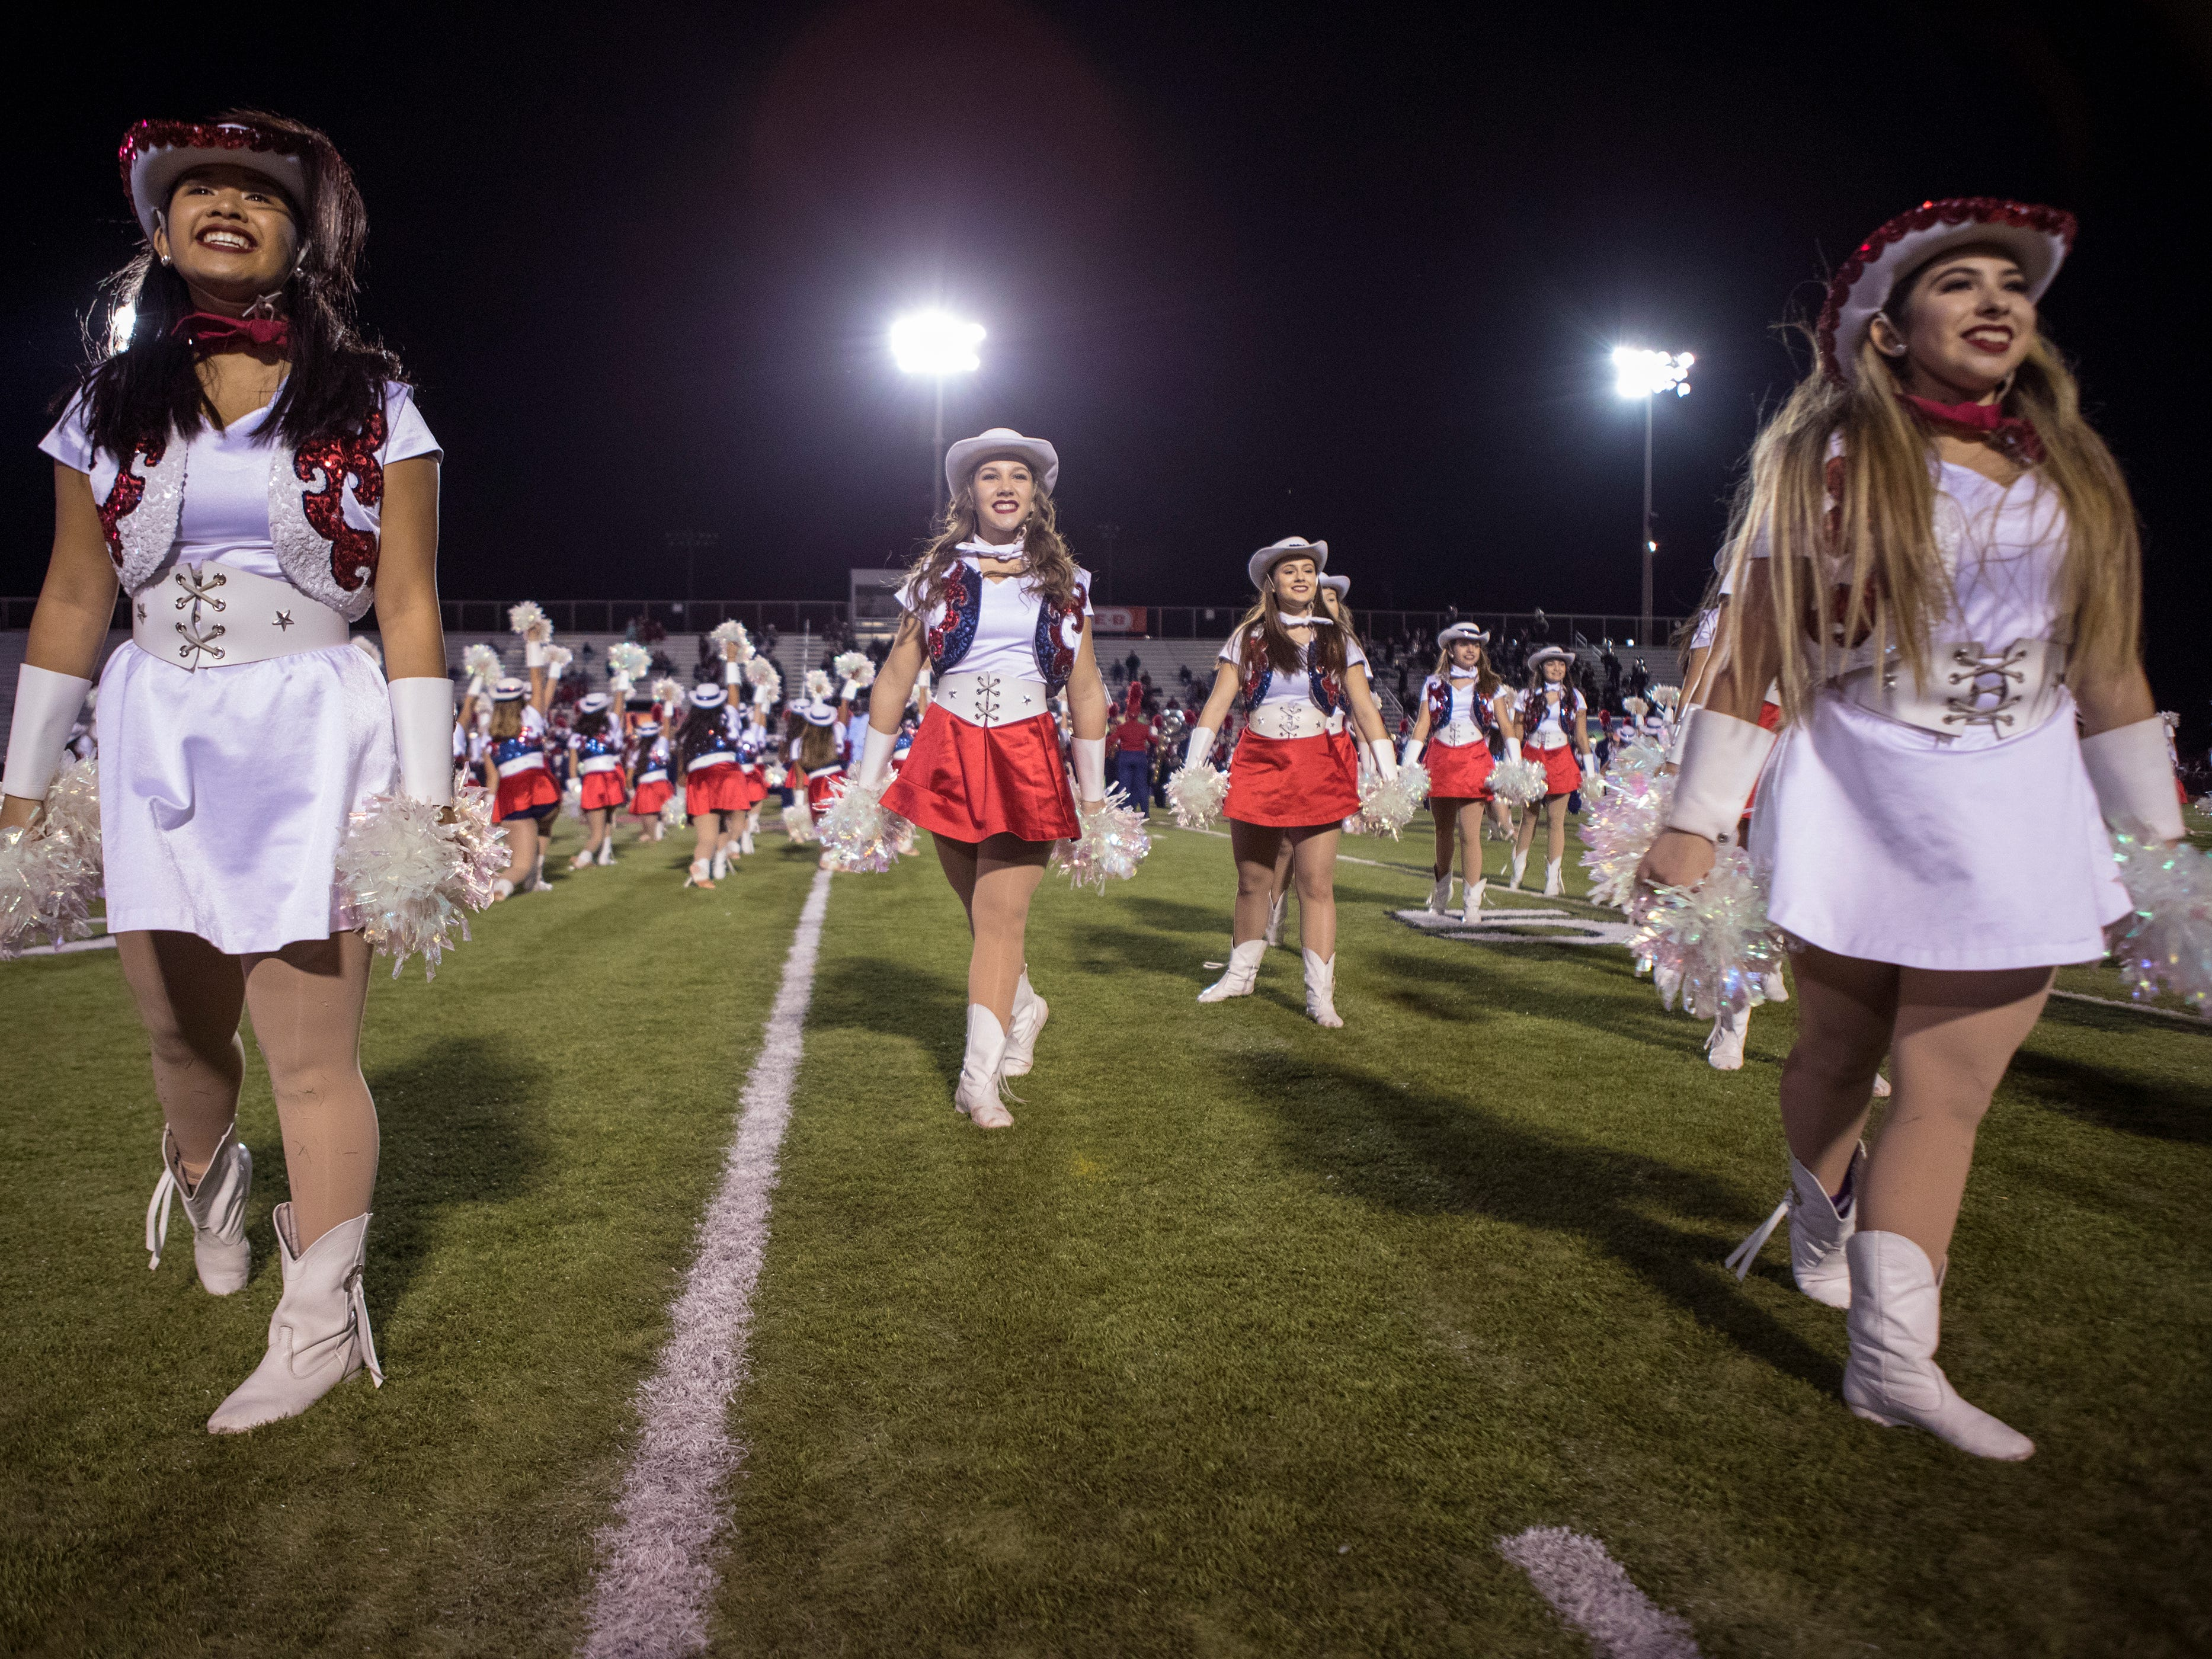 Members of the Veterans Memorial High School Starline Dance Team perform during halftime of the Veterans Memorial and Victoria West football game at Cabaniss Field on Friday, November 2, 2018.